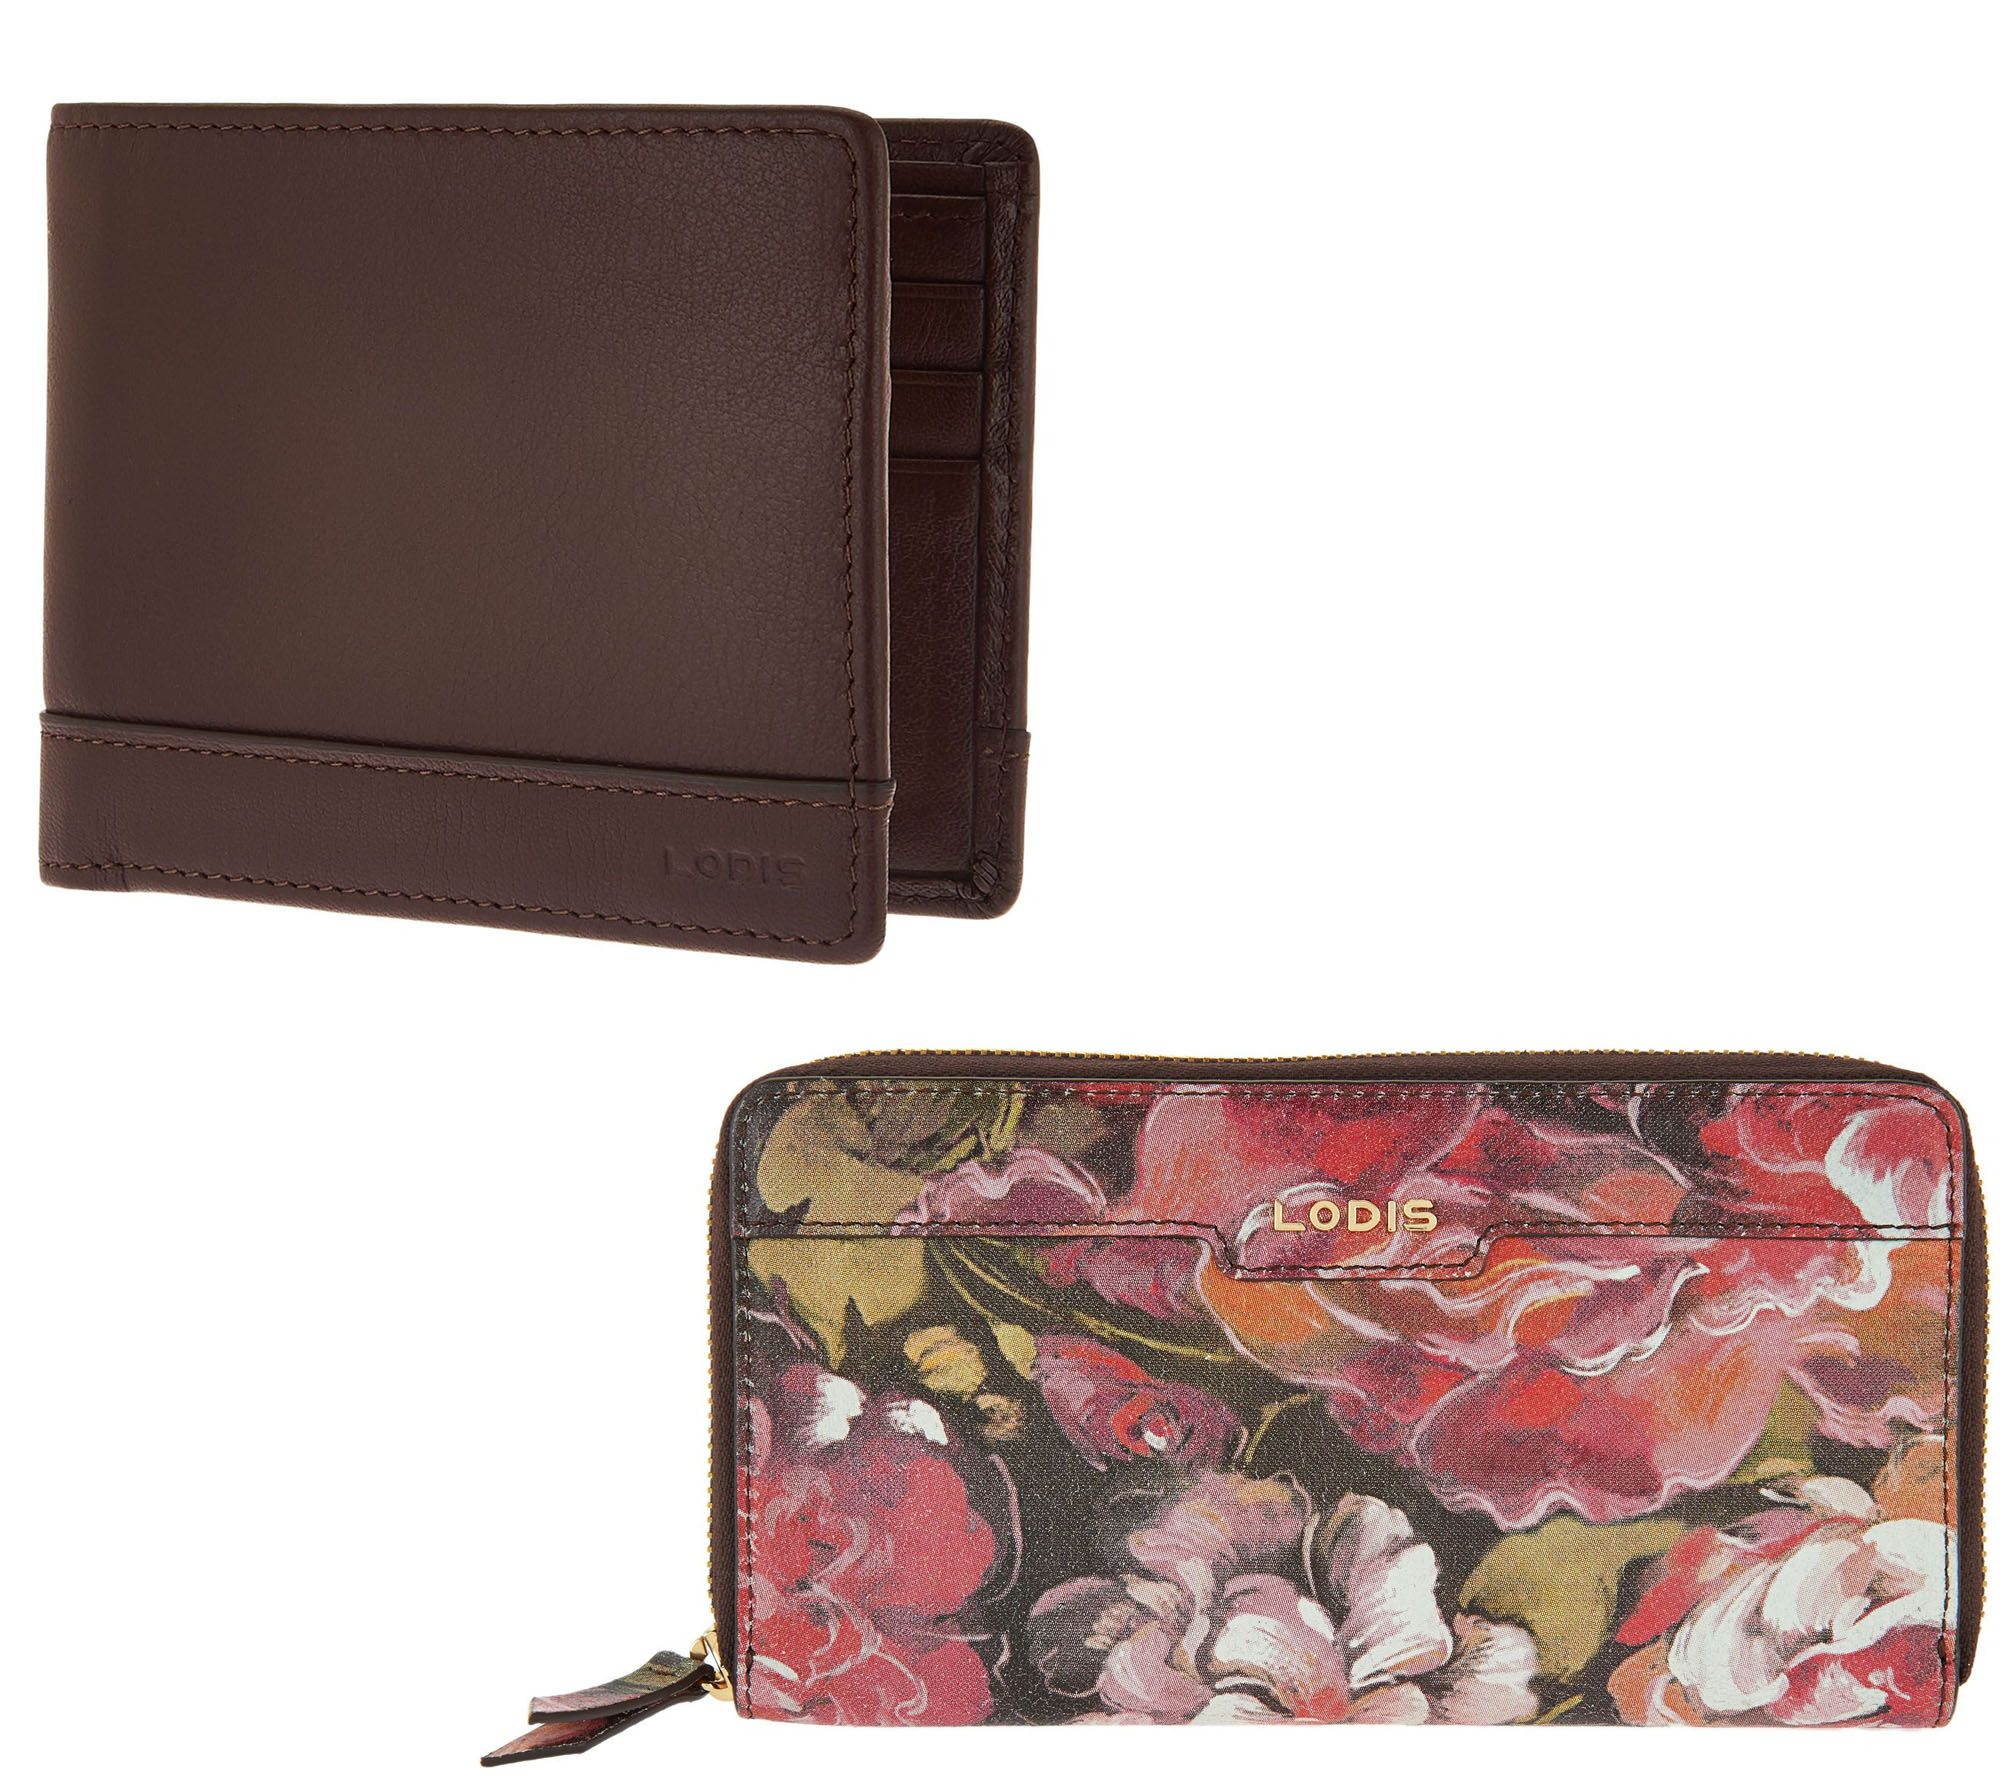 LODIS Women or Men's Italian Leather RFID Wallet — QVC.com